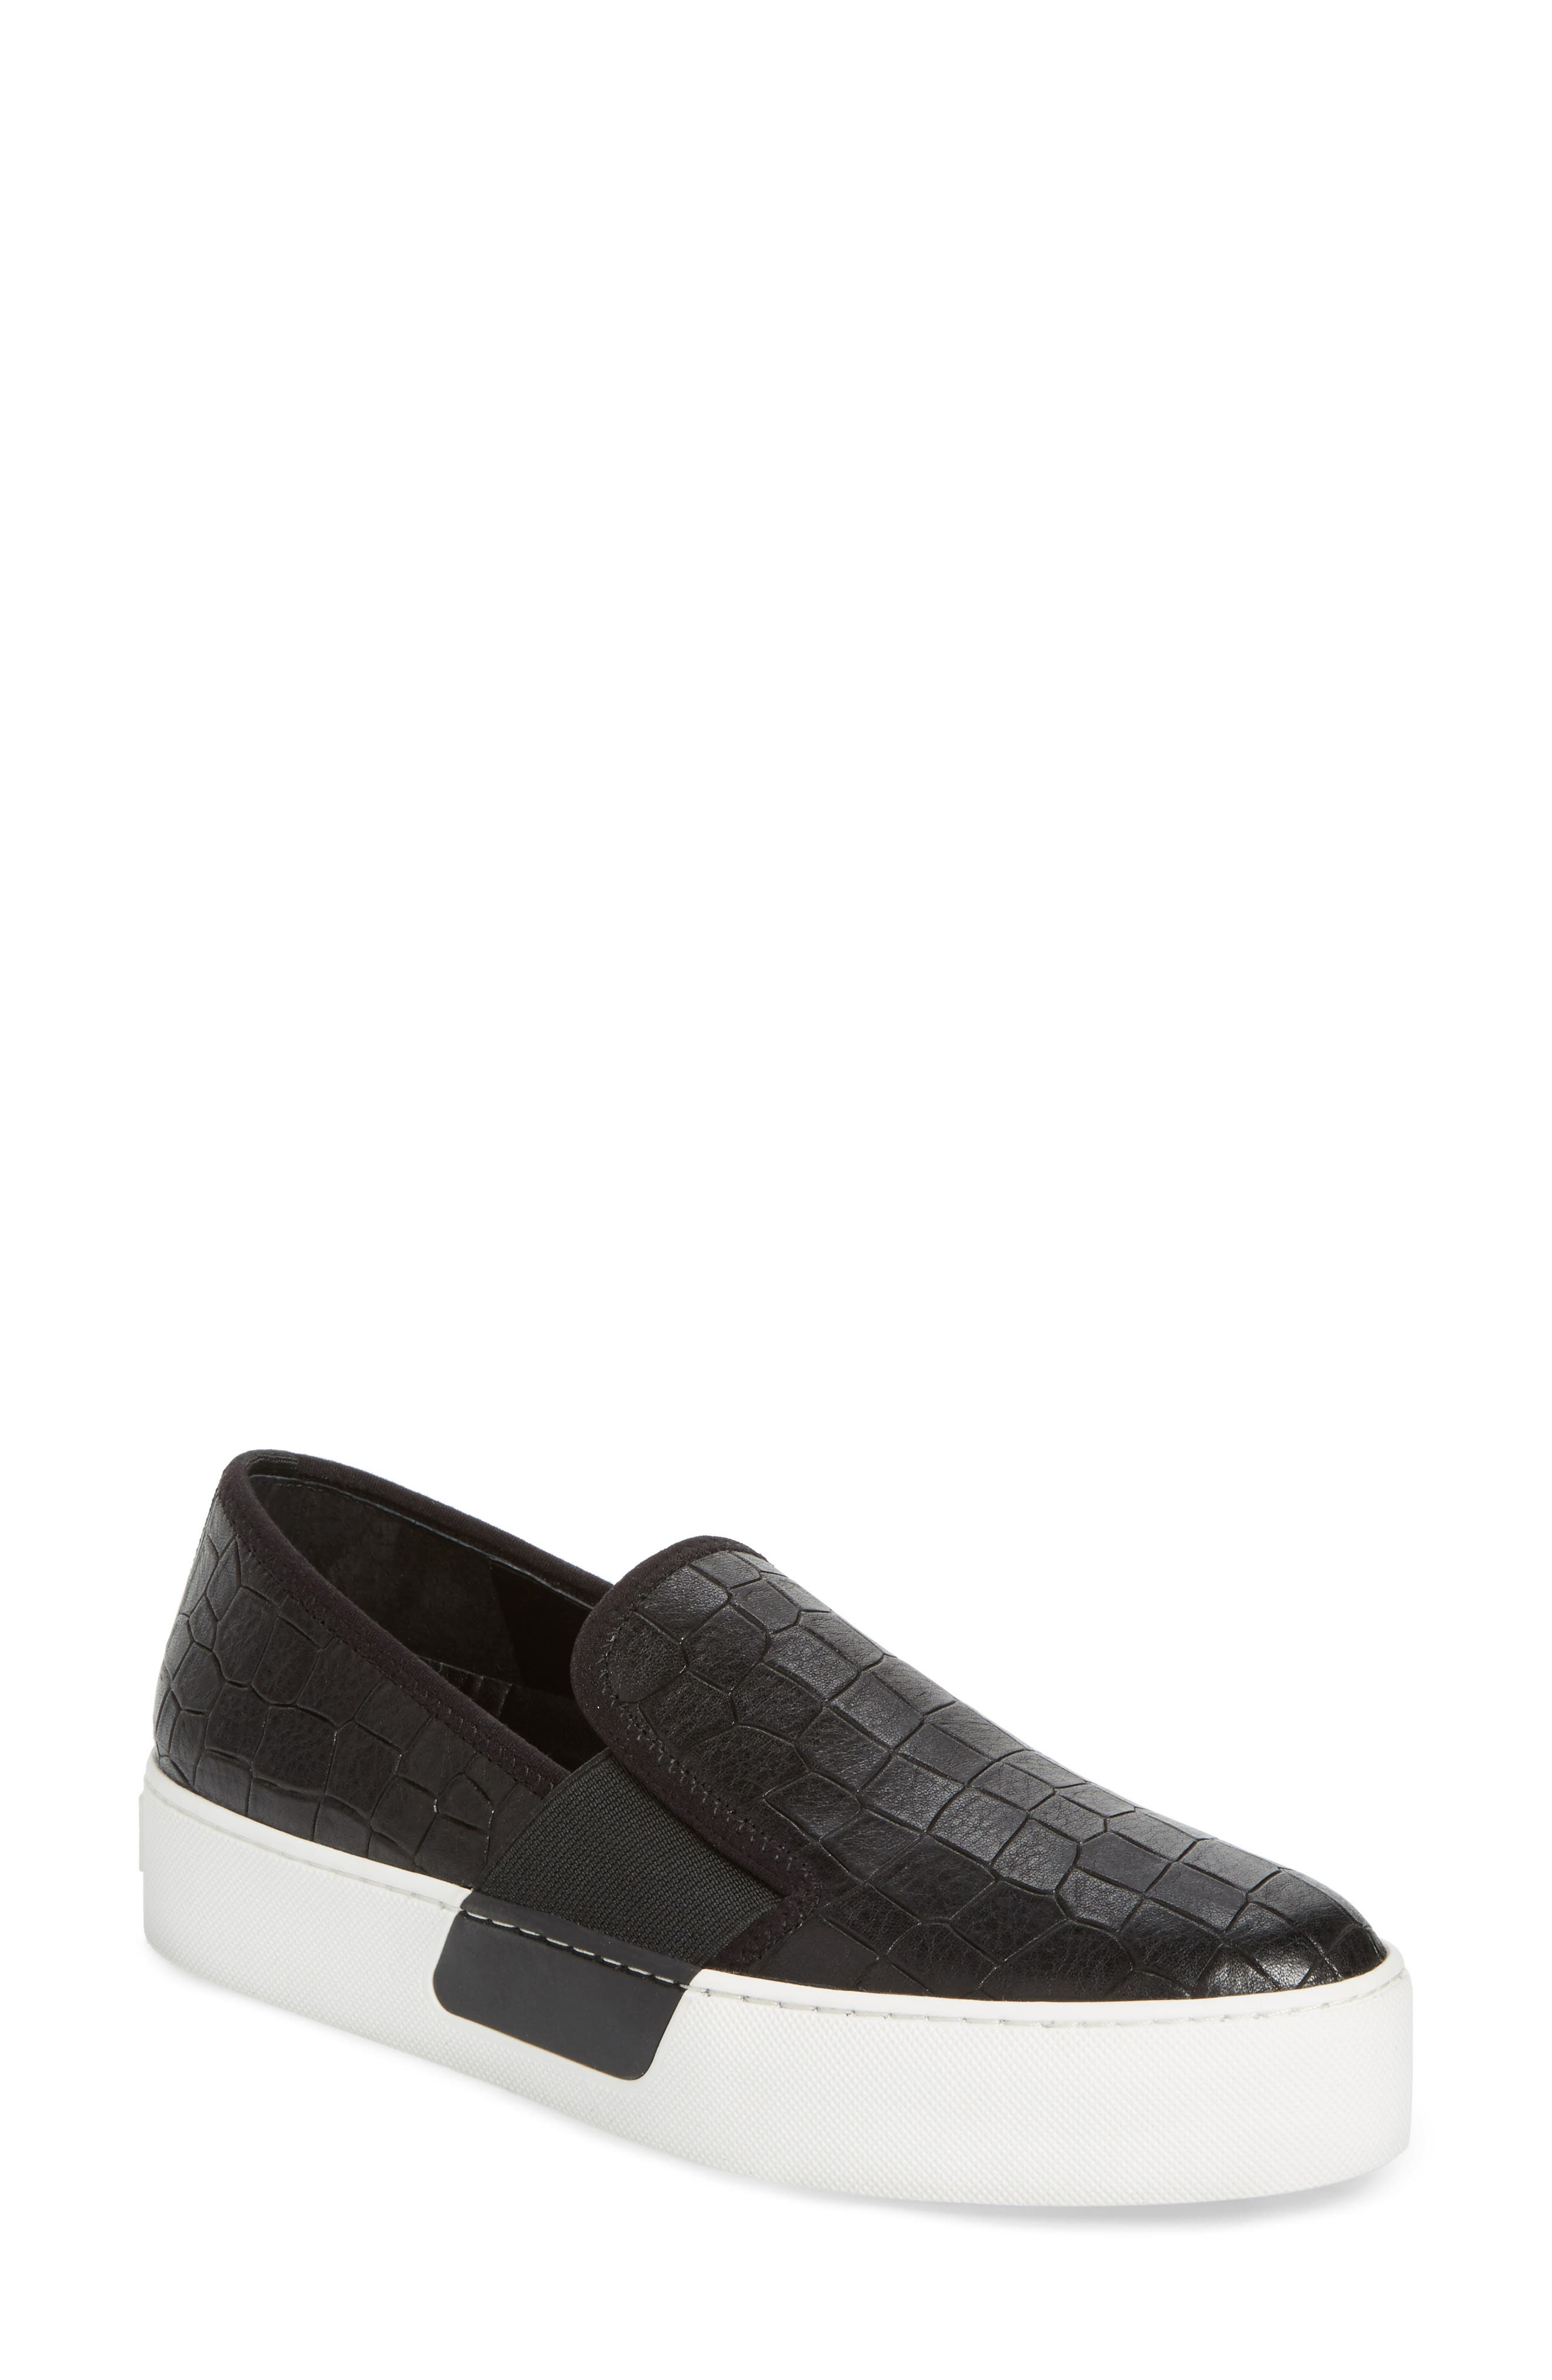 Waylan Slip-On Sneaker,                         Main,                         color, 006